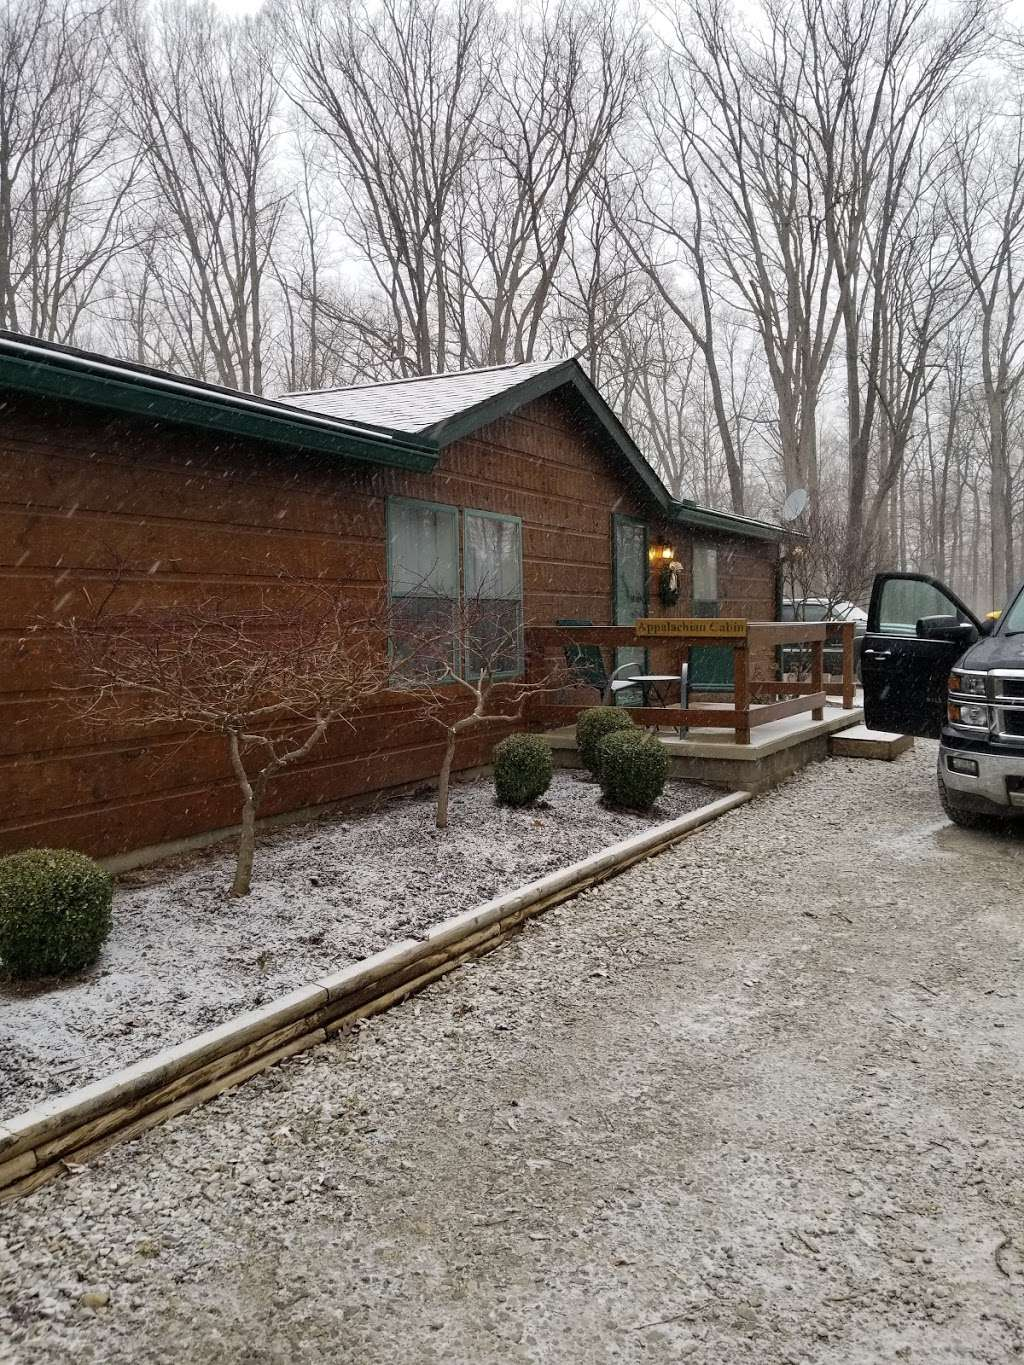 Antler Log Cabins - real estate agency    Photo 7 of 10   Address: 8747 E State Rd 45, Unionville, IN 47468, USA   Phone: (812) 339-6547